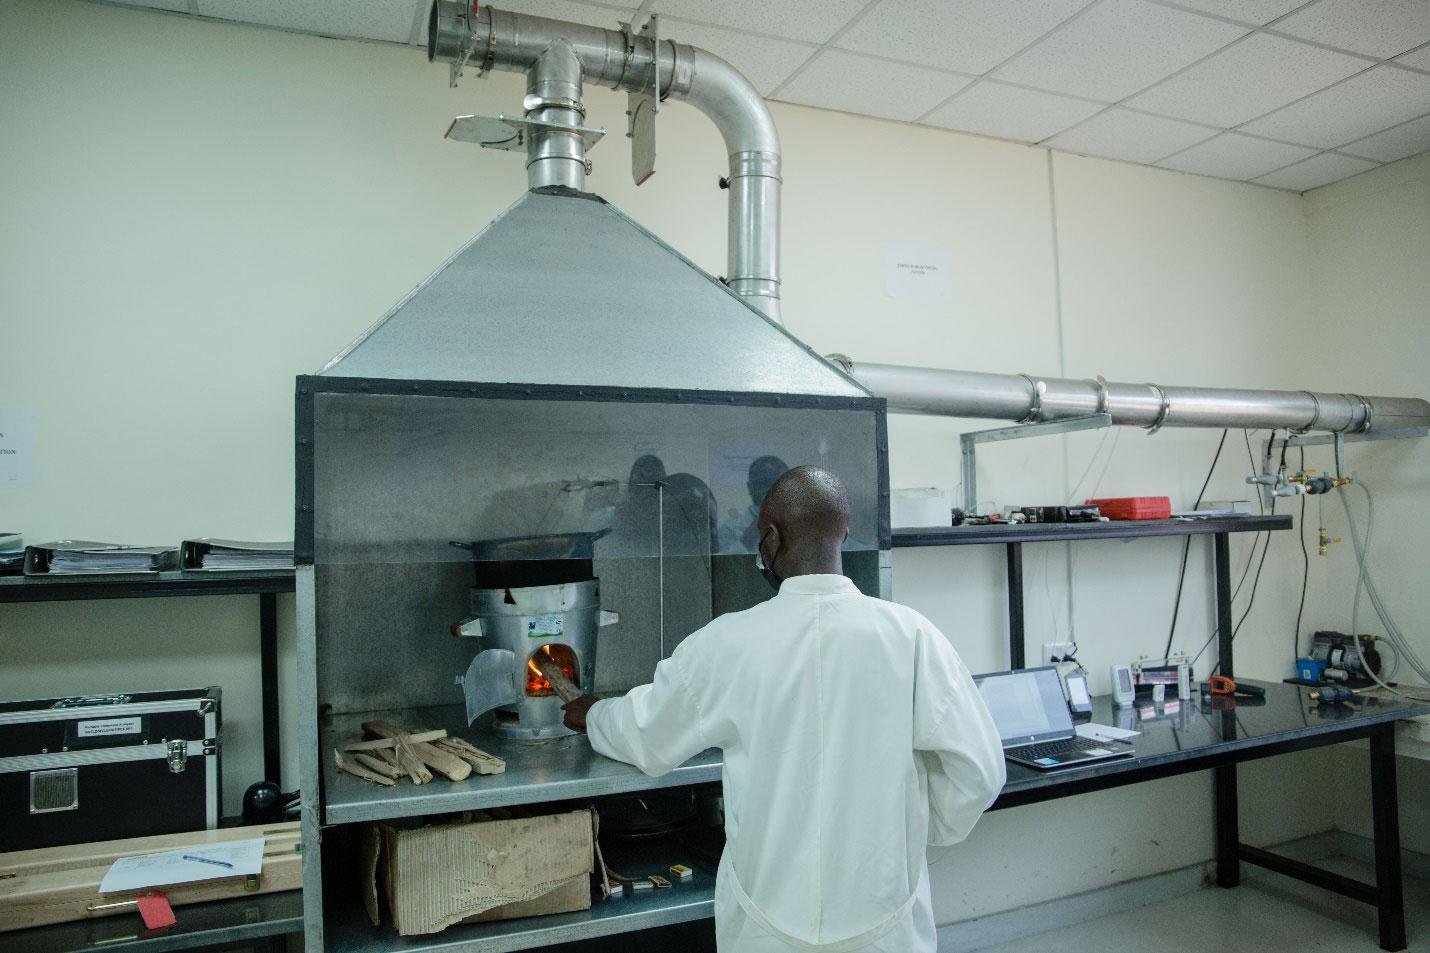 How the established cookstoves testing laboratory is helping to promote the use of cleaner sources of energy